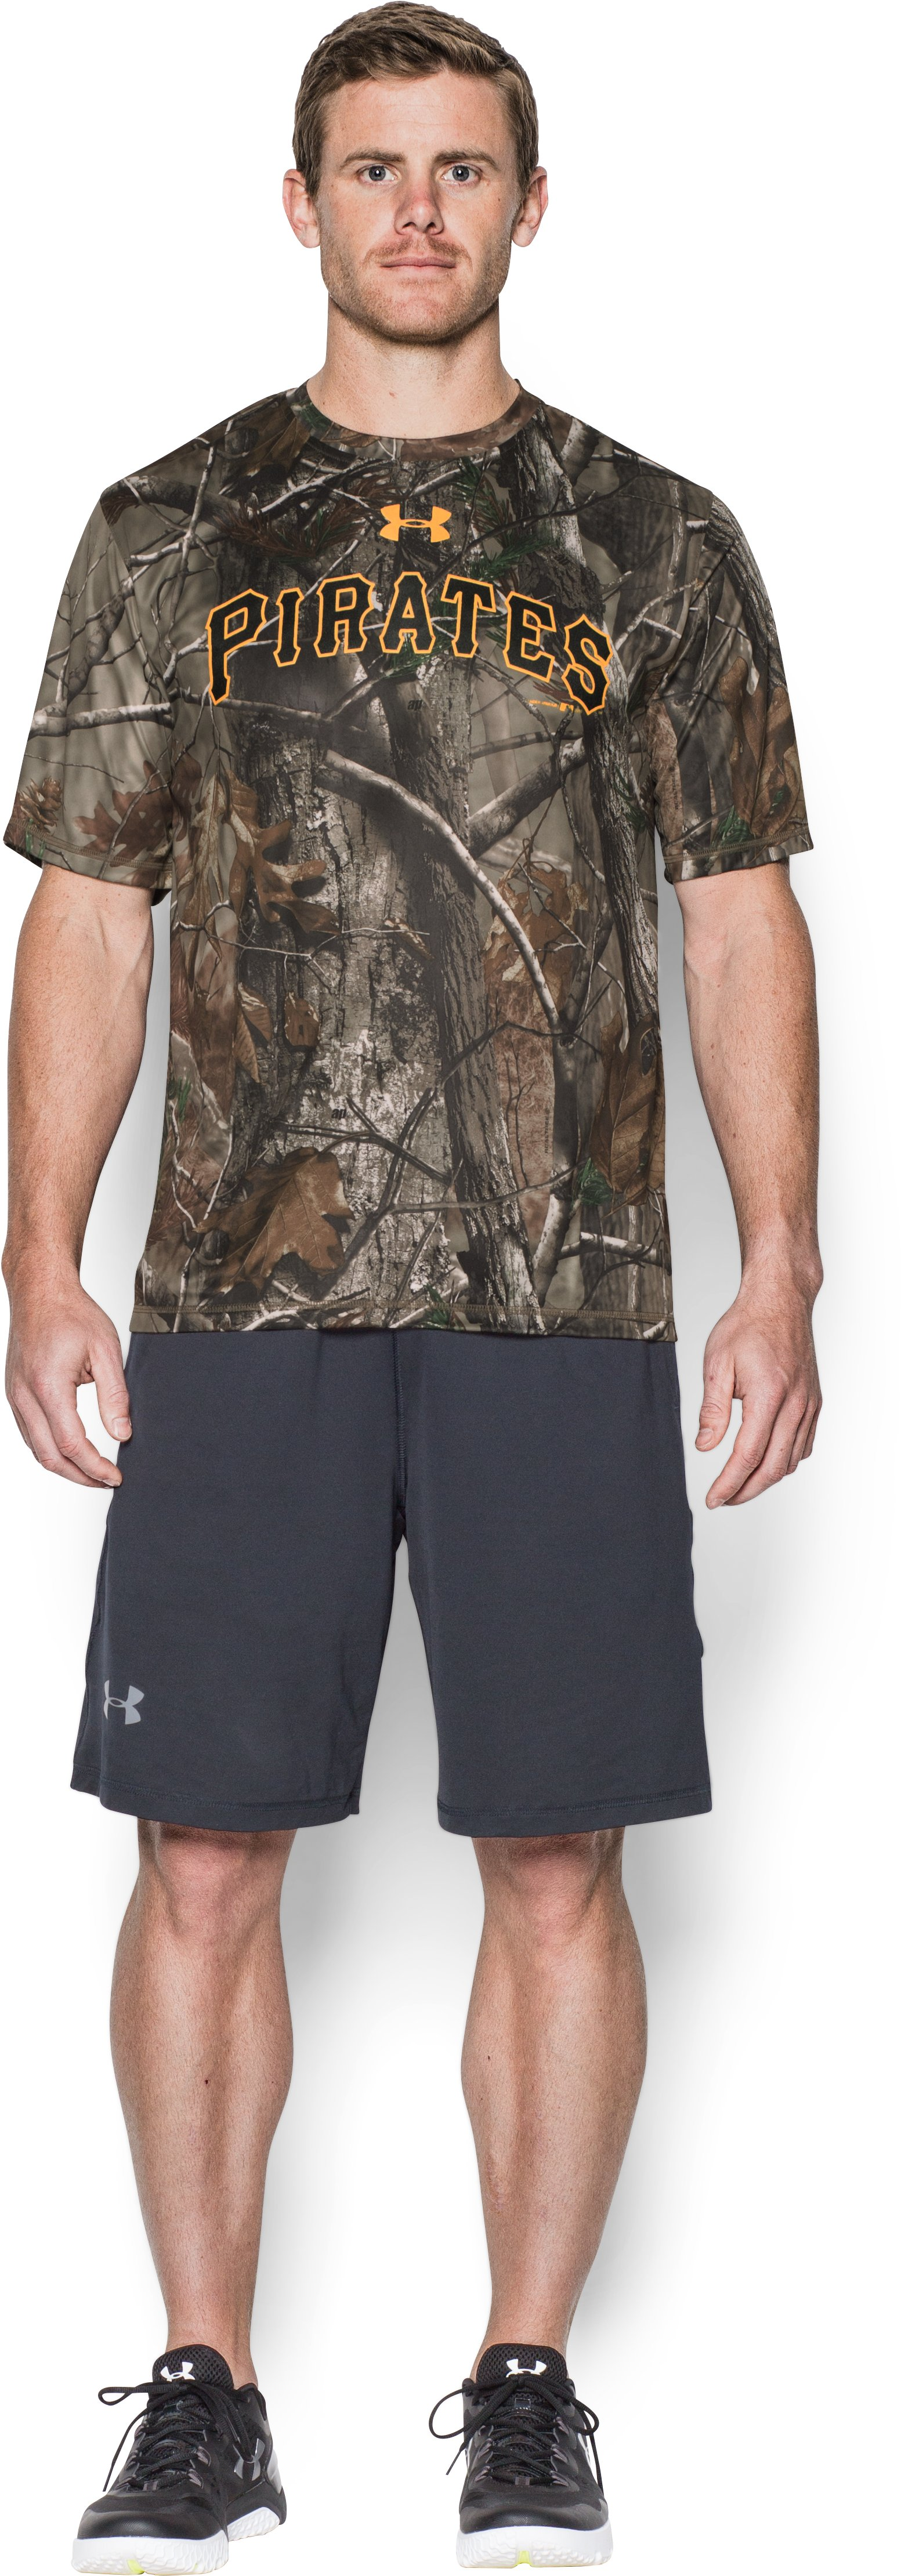 Men's Pittsburgh Pirates Camo T-Shirt, Forest Green